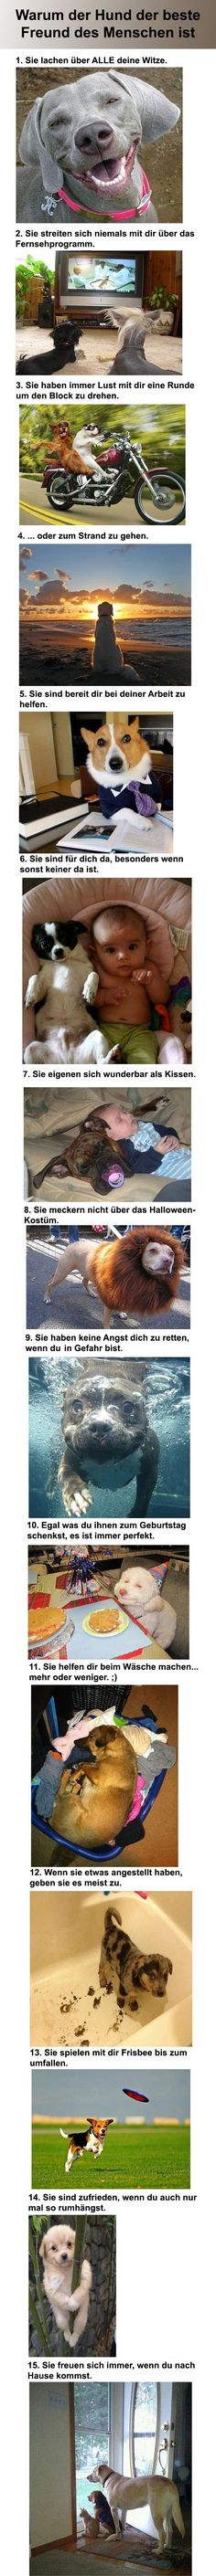 Partnersuche – Männer und Frauen im Vergleich – Win Bild Warum Hunde des Menschen bester Freund sind – Win Bild Animals And Pets, Funny Animals, Cute Animals, Silly Dogs, Funny Dogs, I Love Dogs, Cute Dogs, Tierischer Humor, Cat Facts